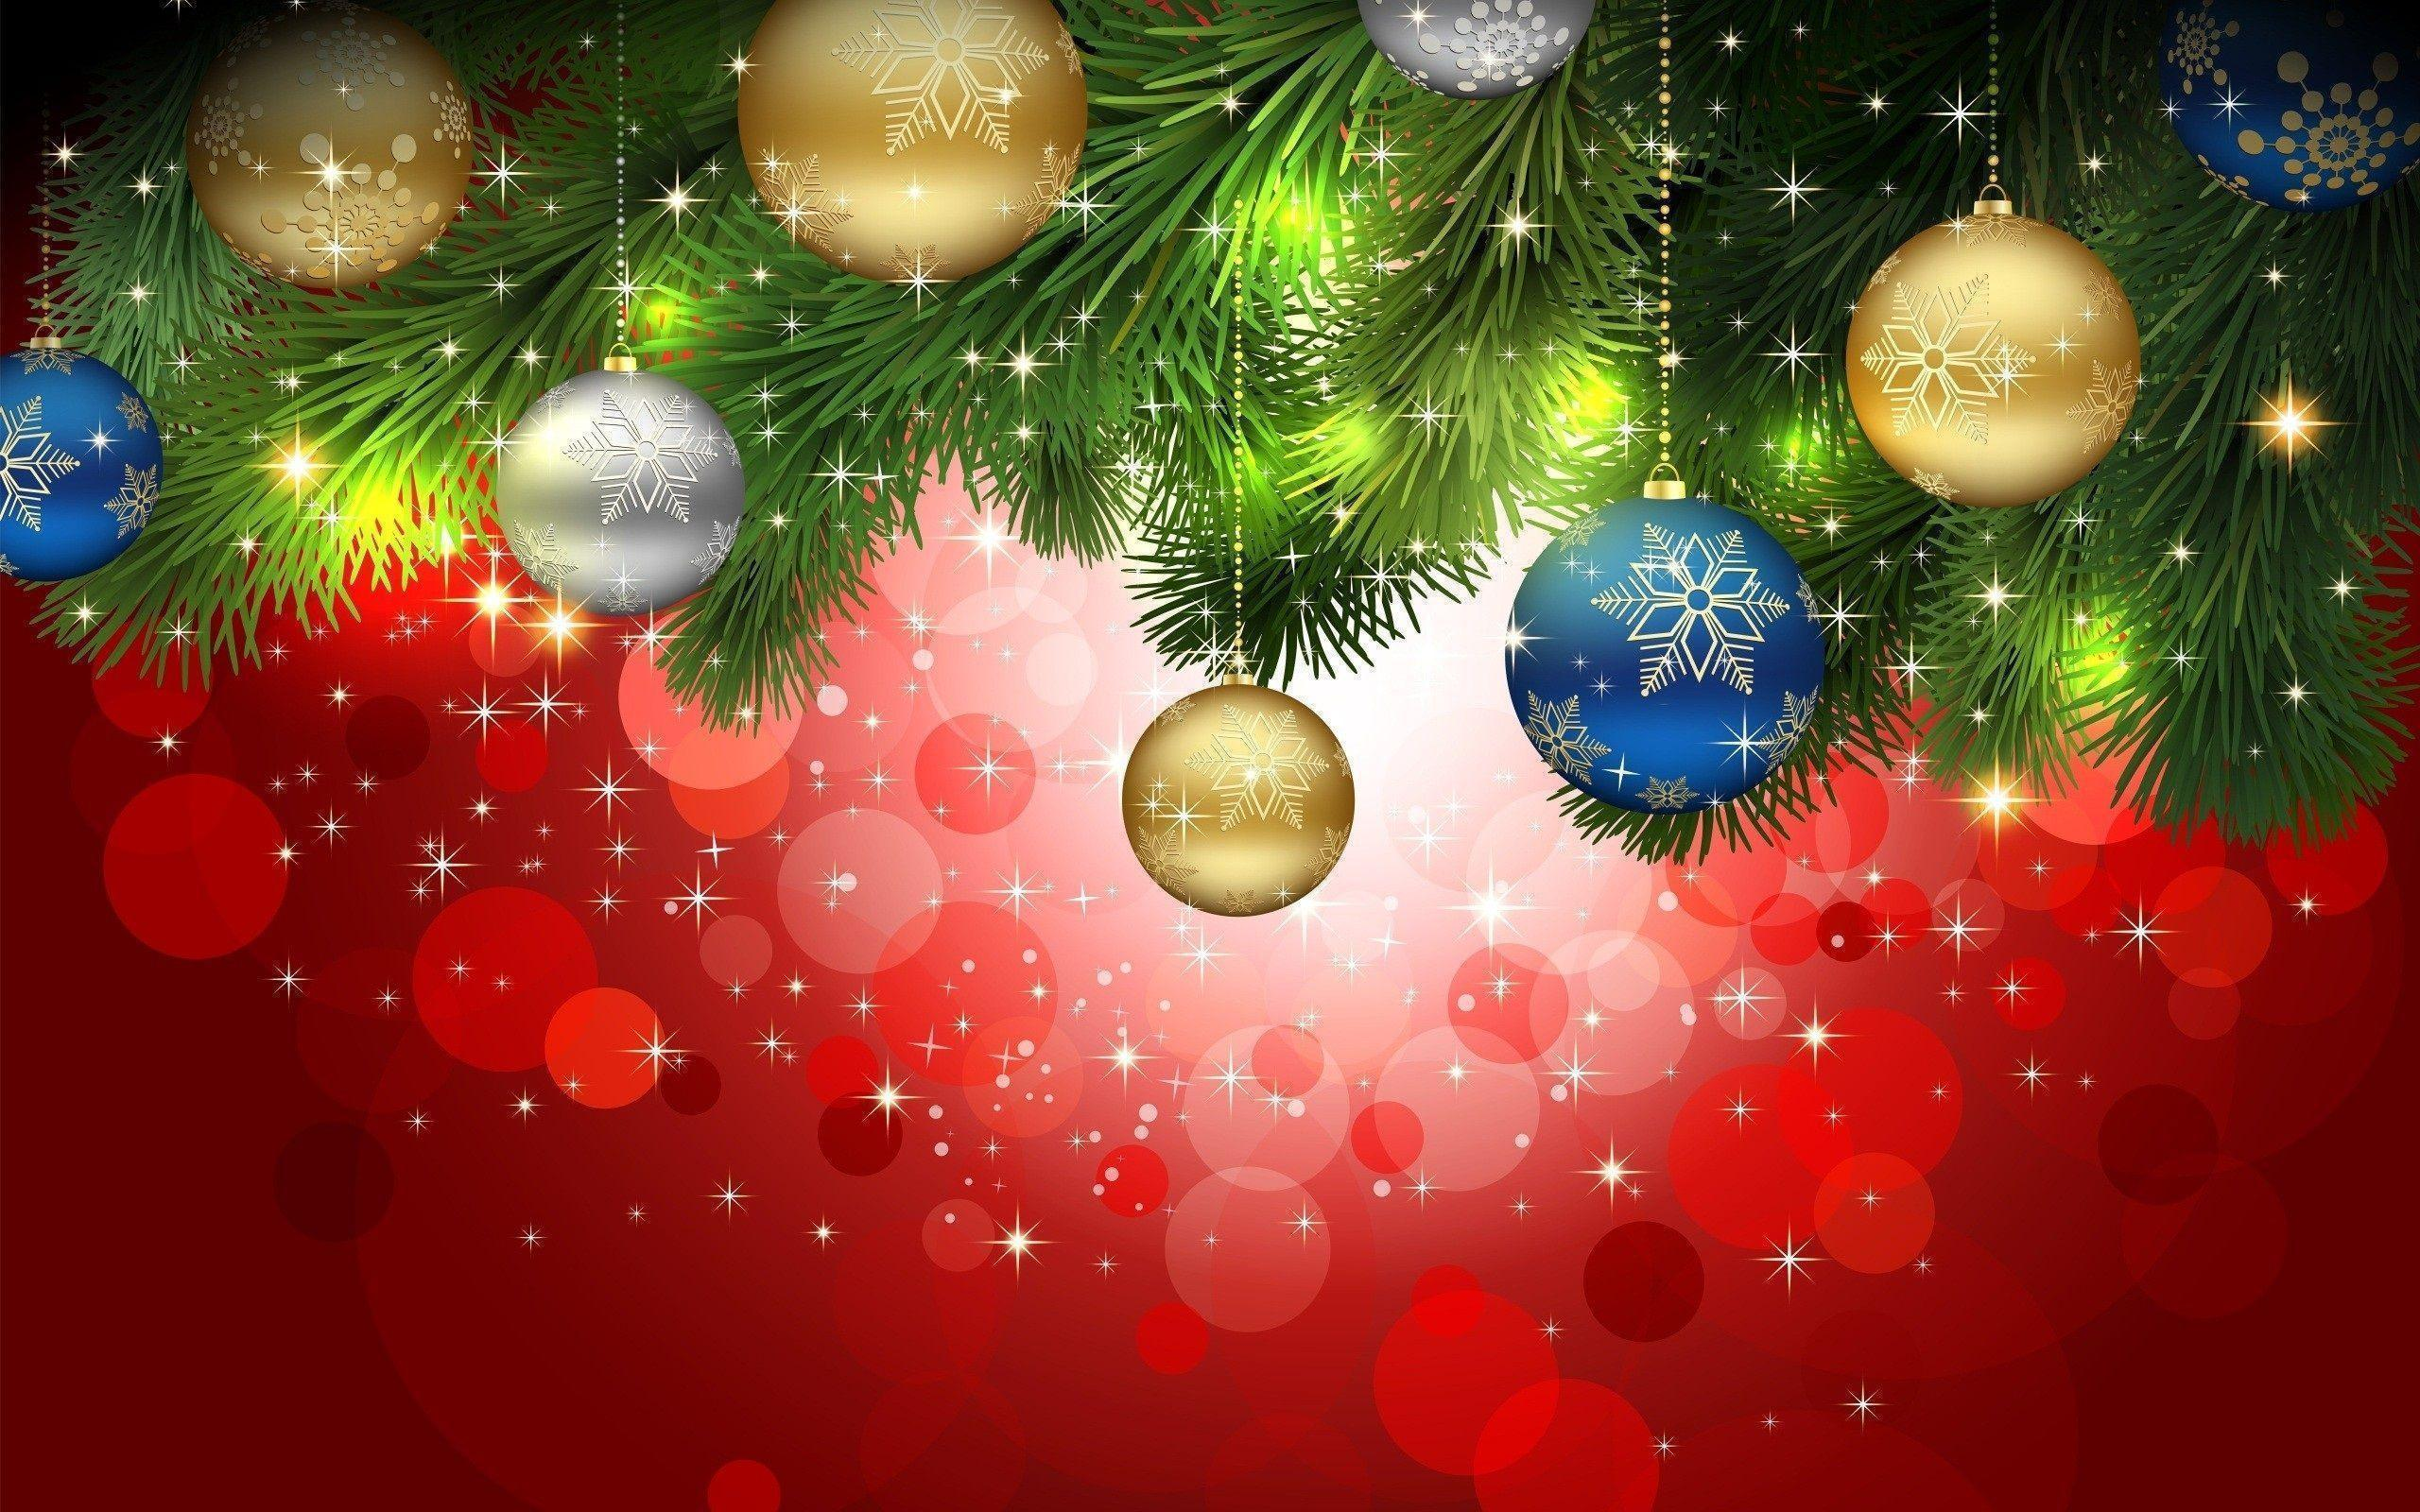 Christmas decoration wallpaper : Christmas decoration wallpapers wallpaper cave